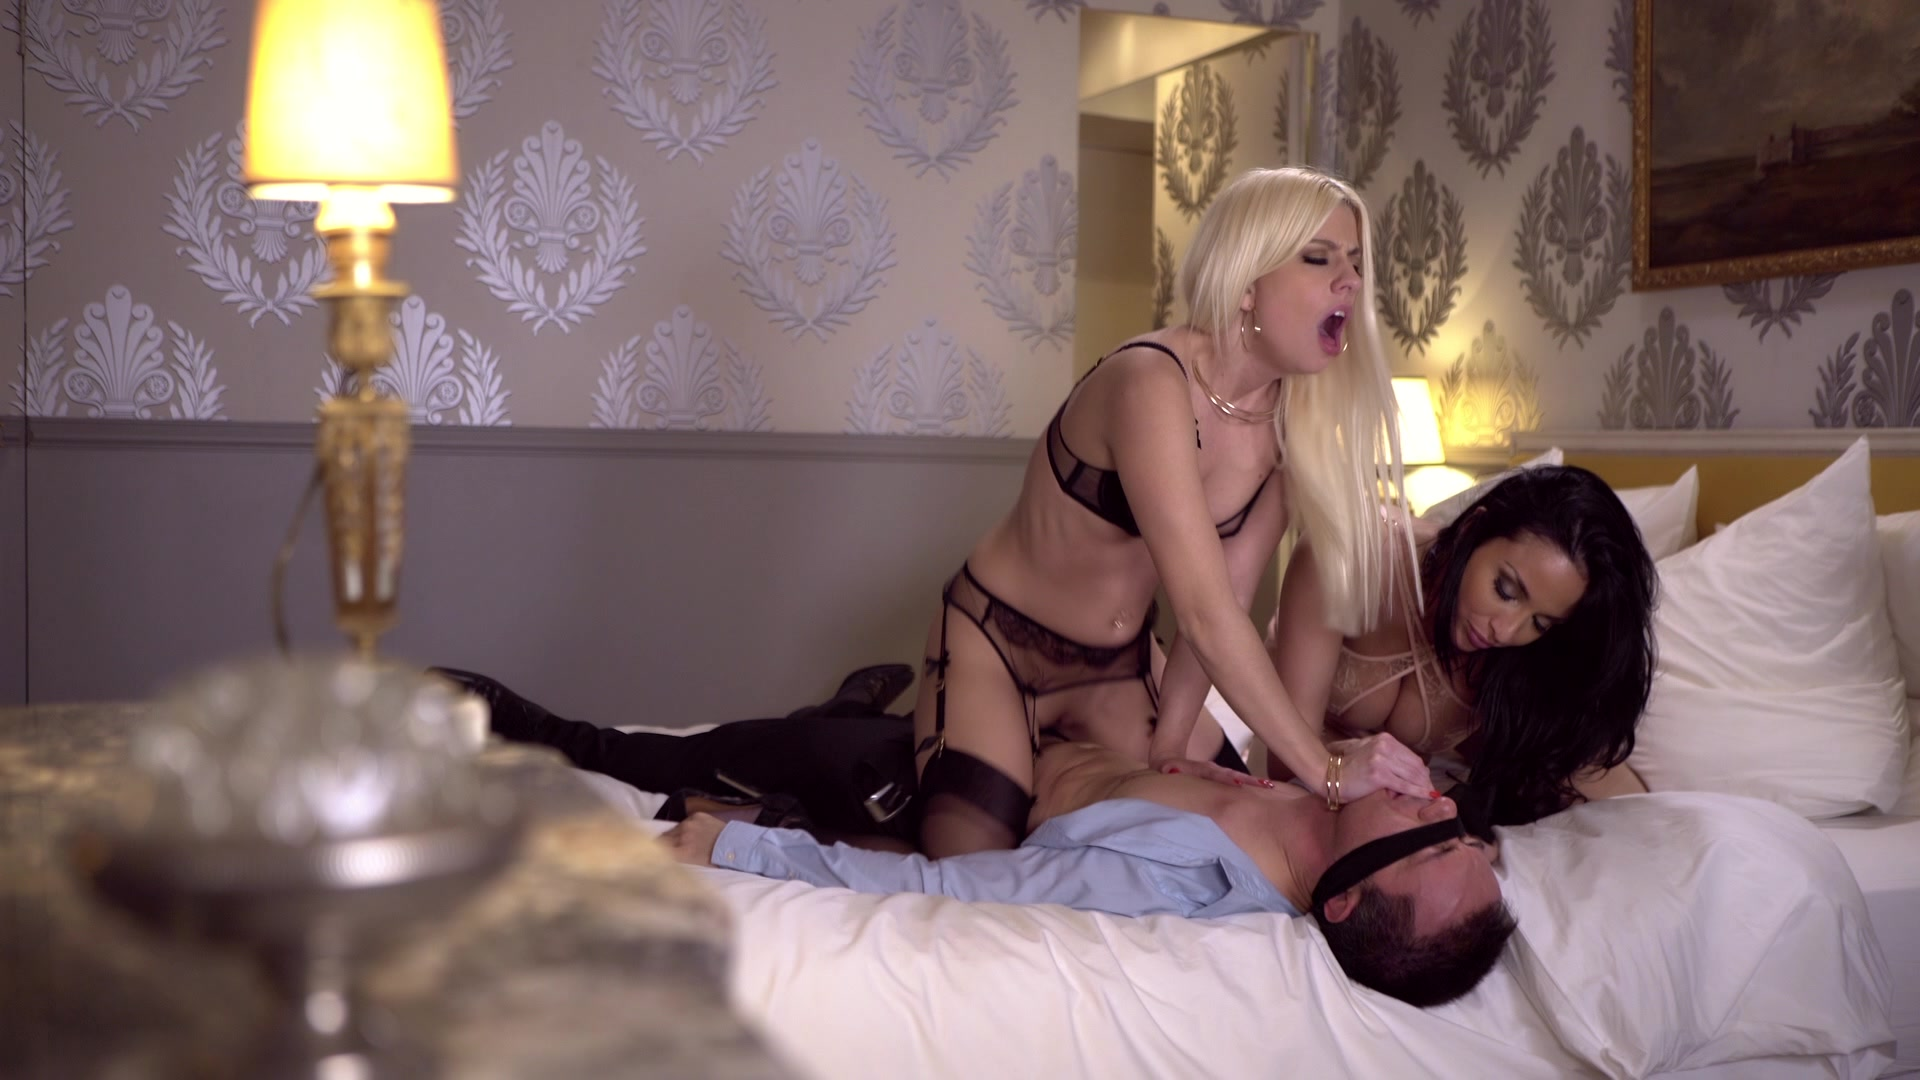 Scene with Jessie Volt and Anissa Kate - image 10 out of 20